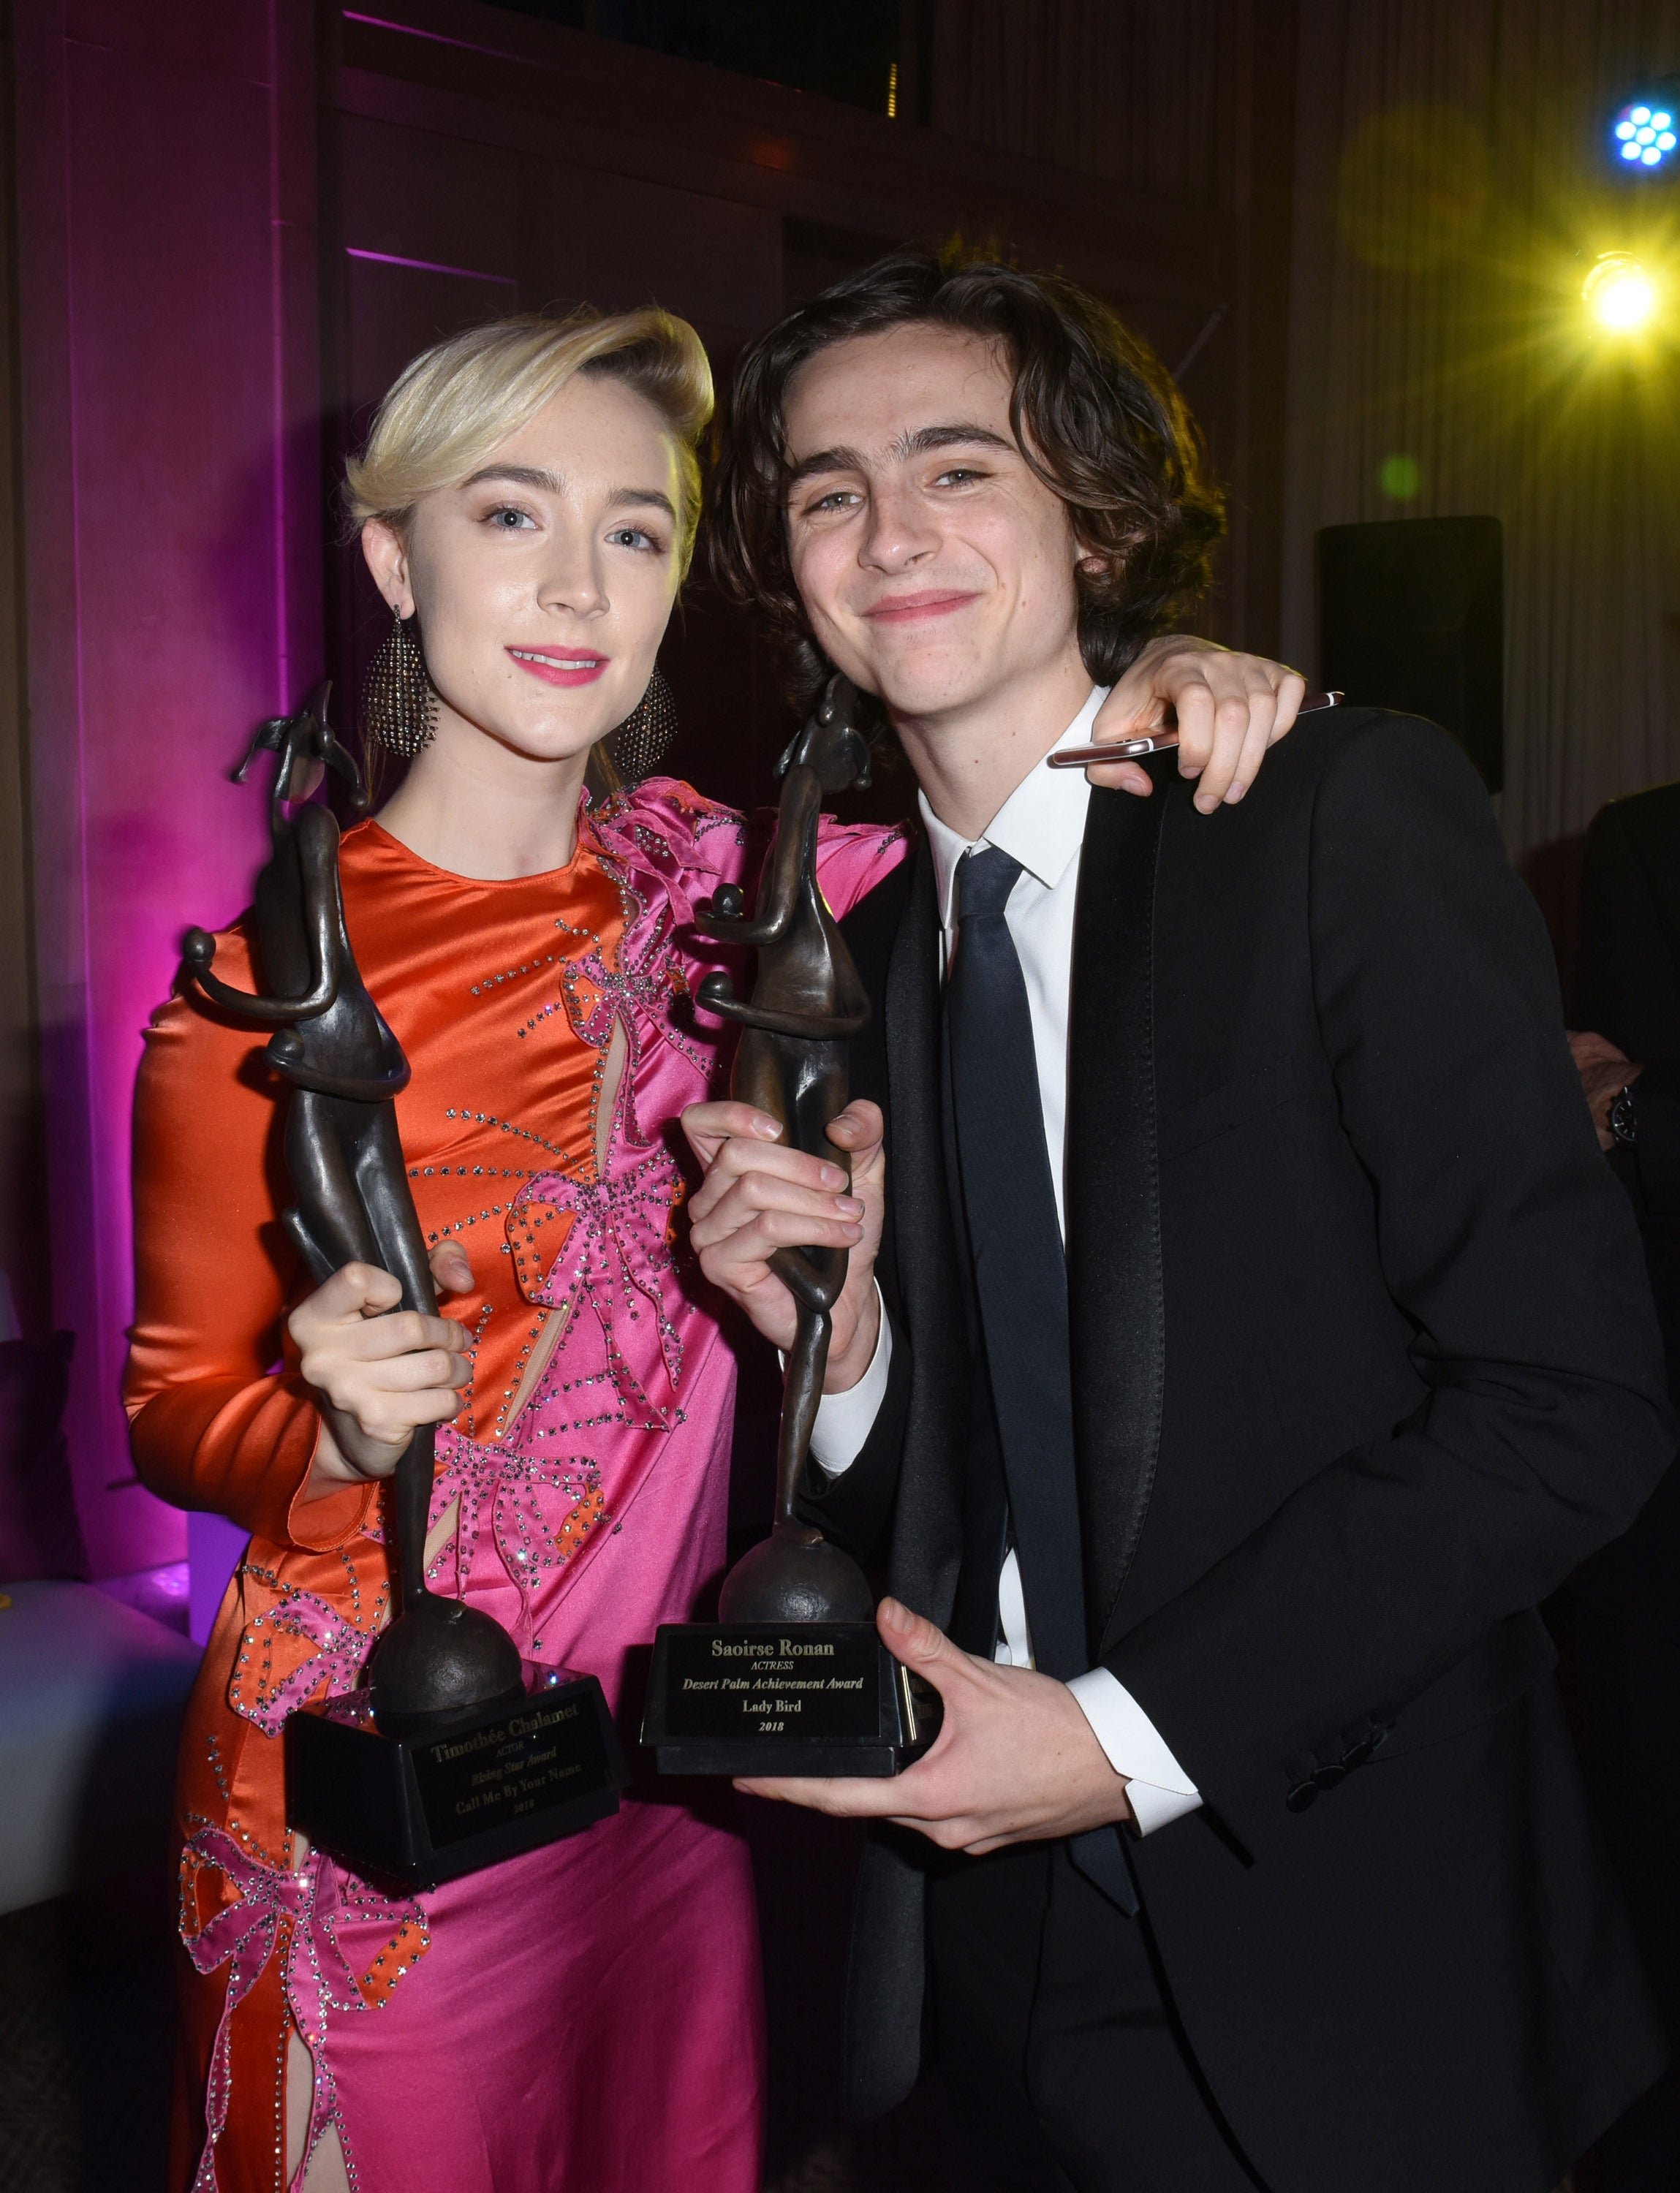 Why You Need to Know Timothee Chalamet & Saoirse Ronan This